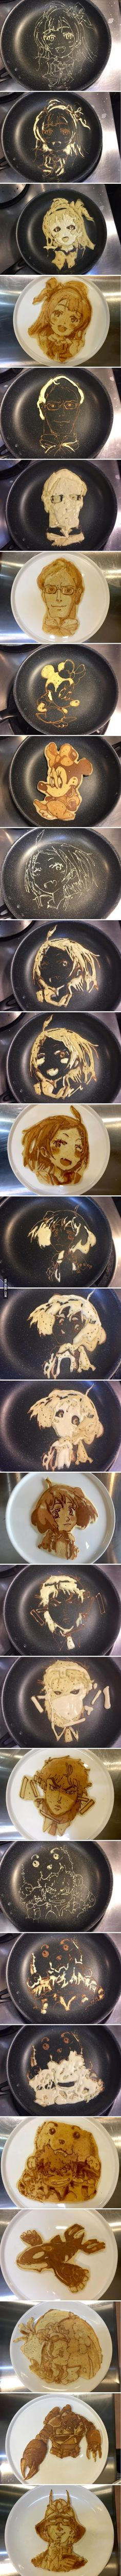 Pancake Art. Give me this and i will love you